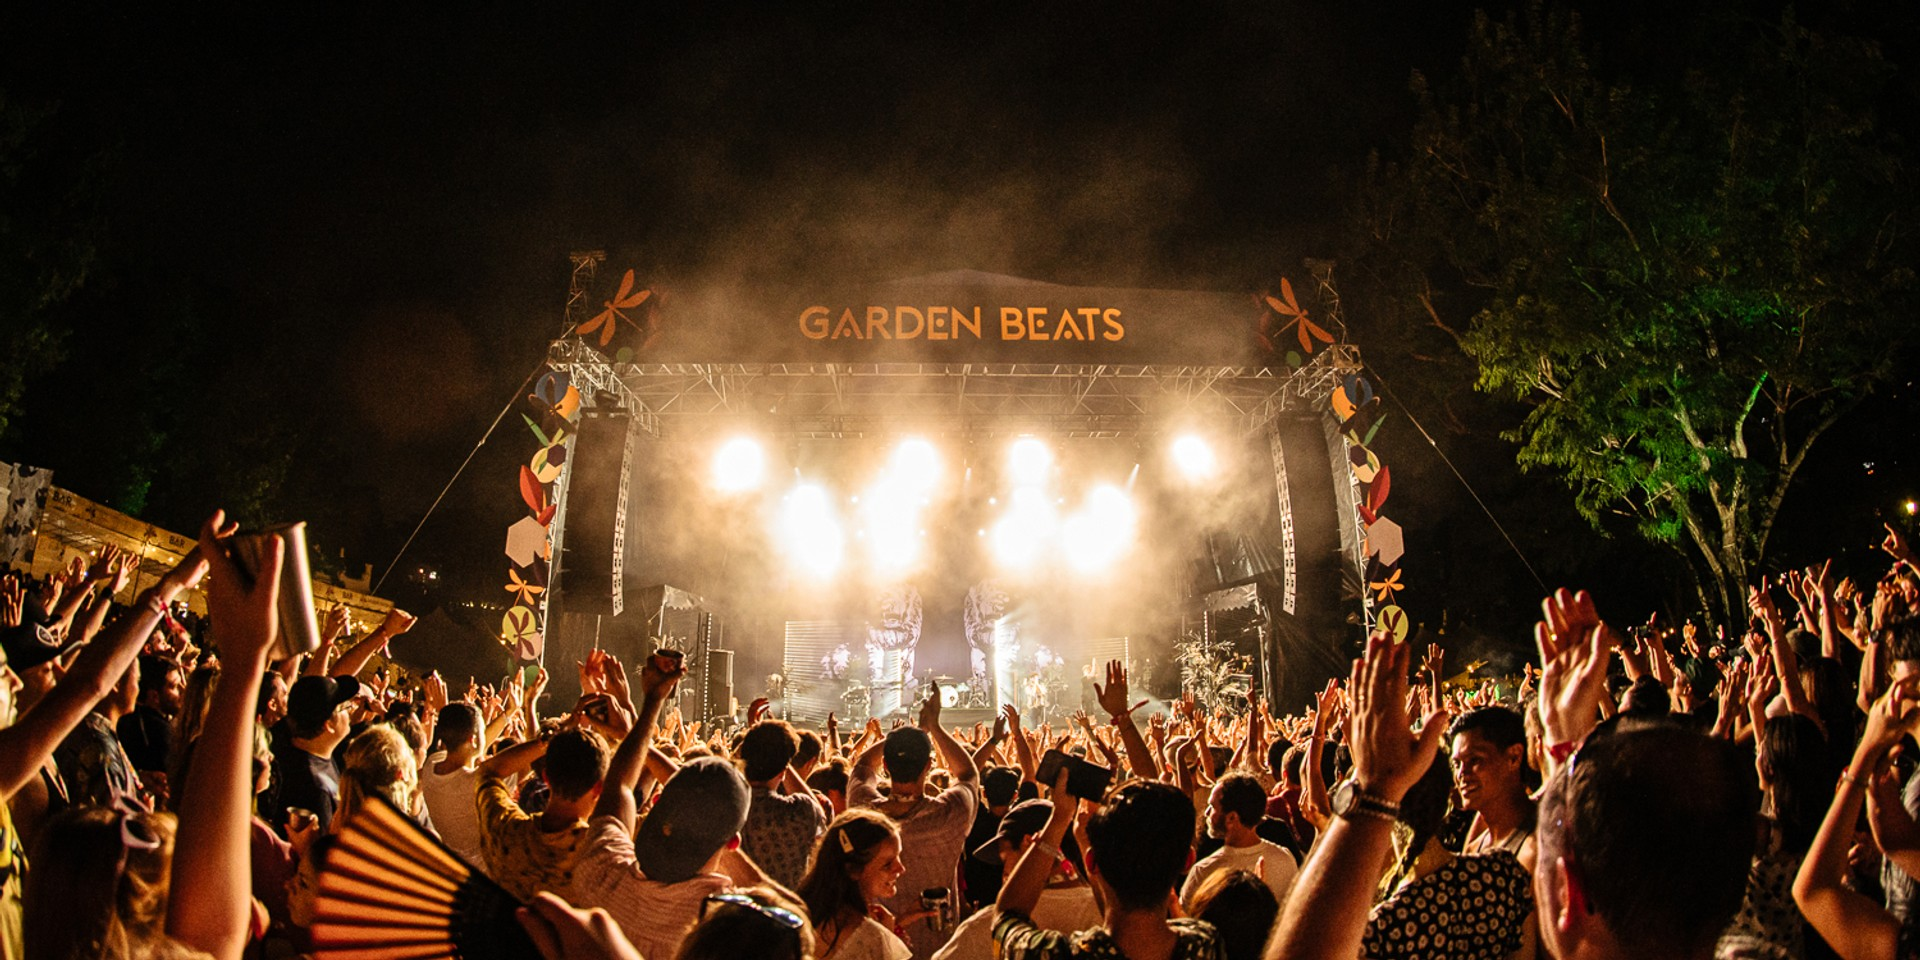 Garden Beats 2020 leaps into the year with remarkable entertainment – festival report